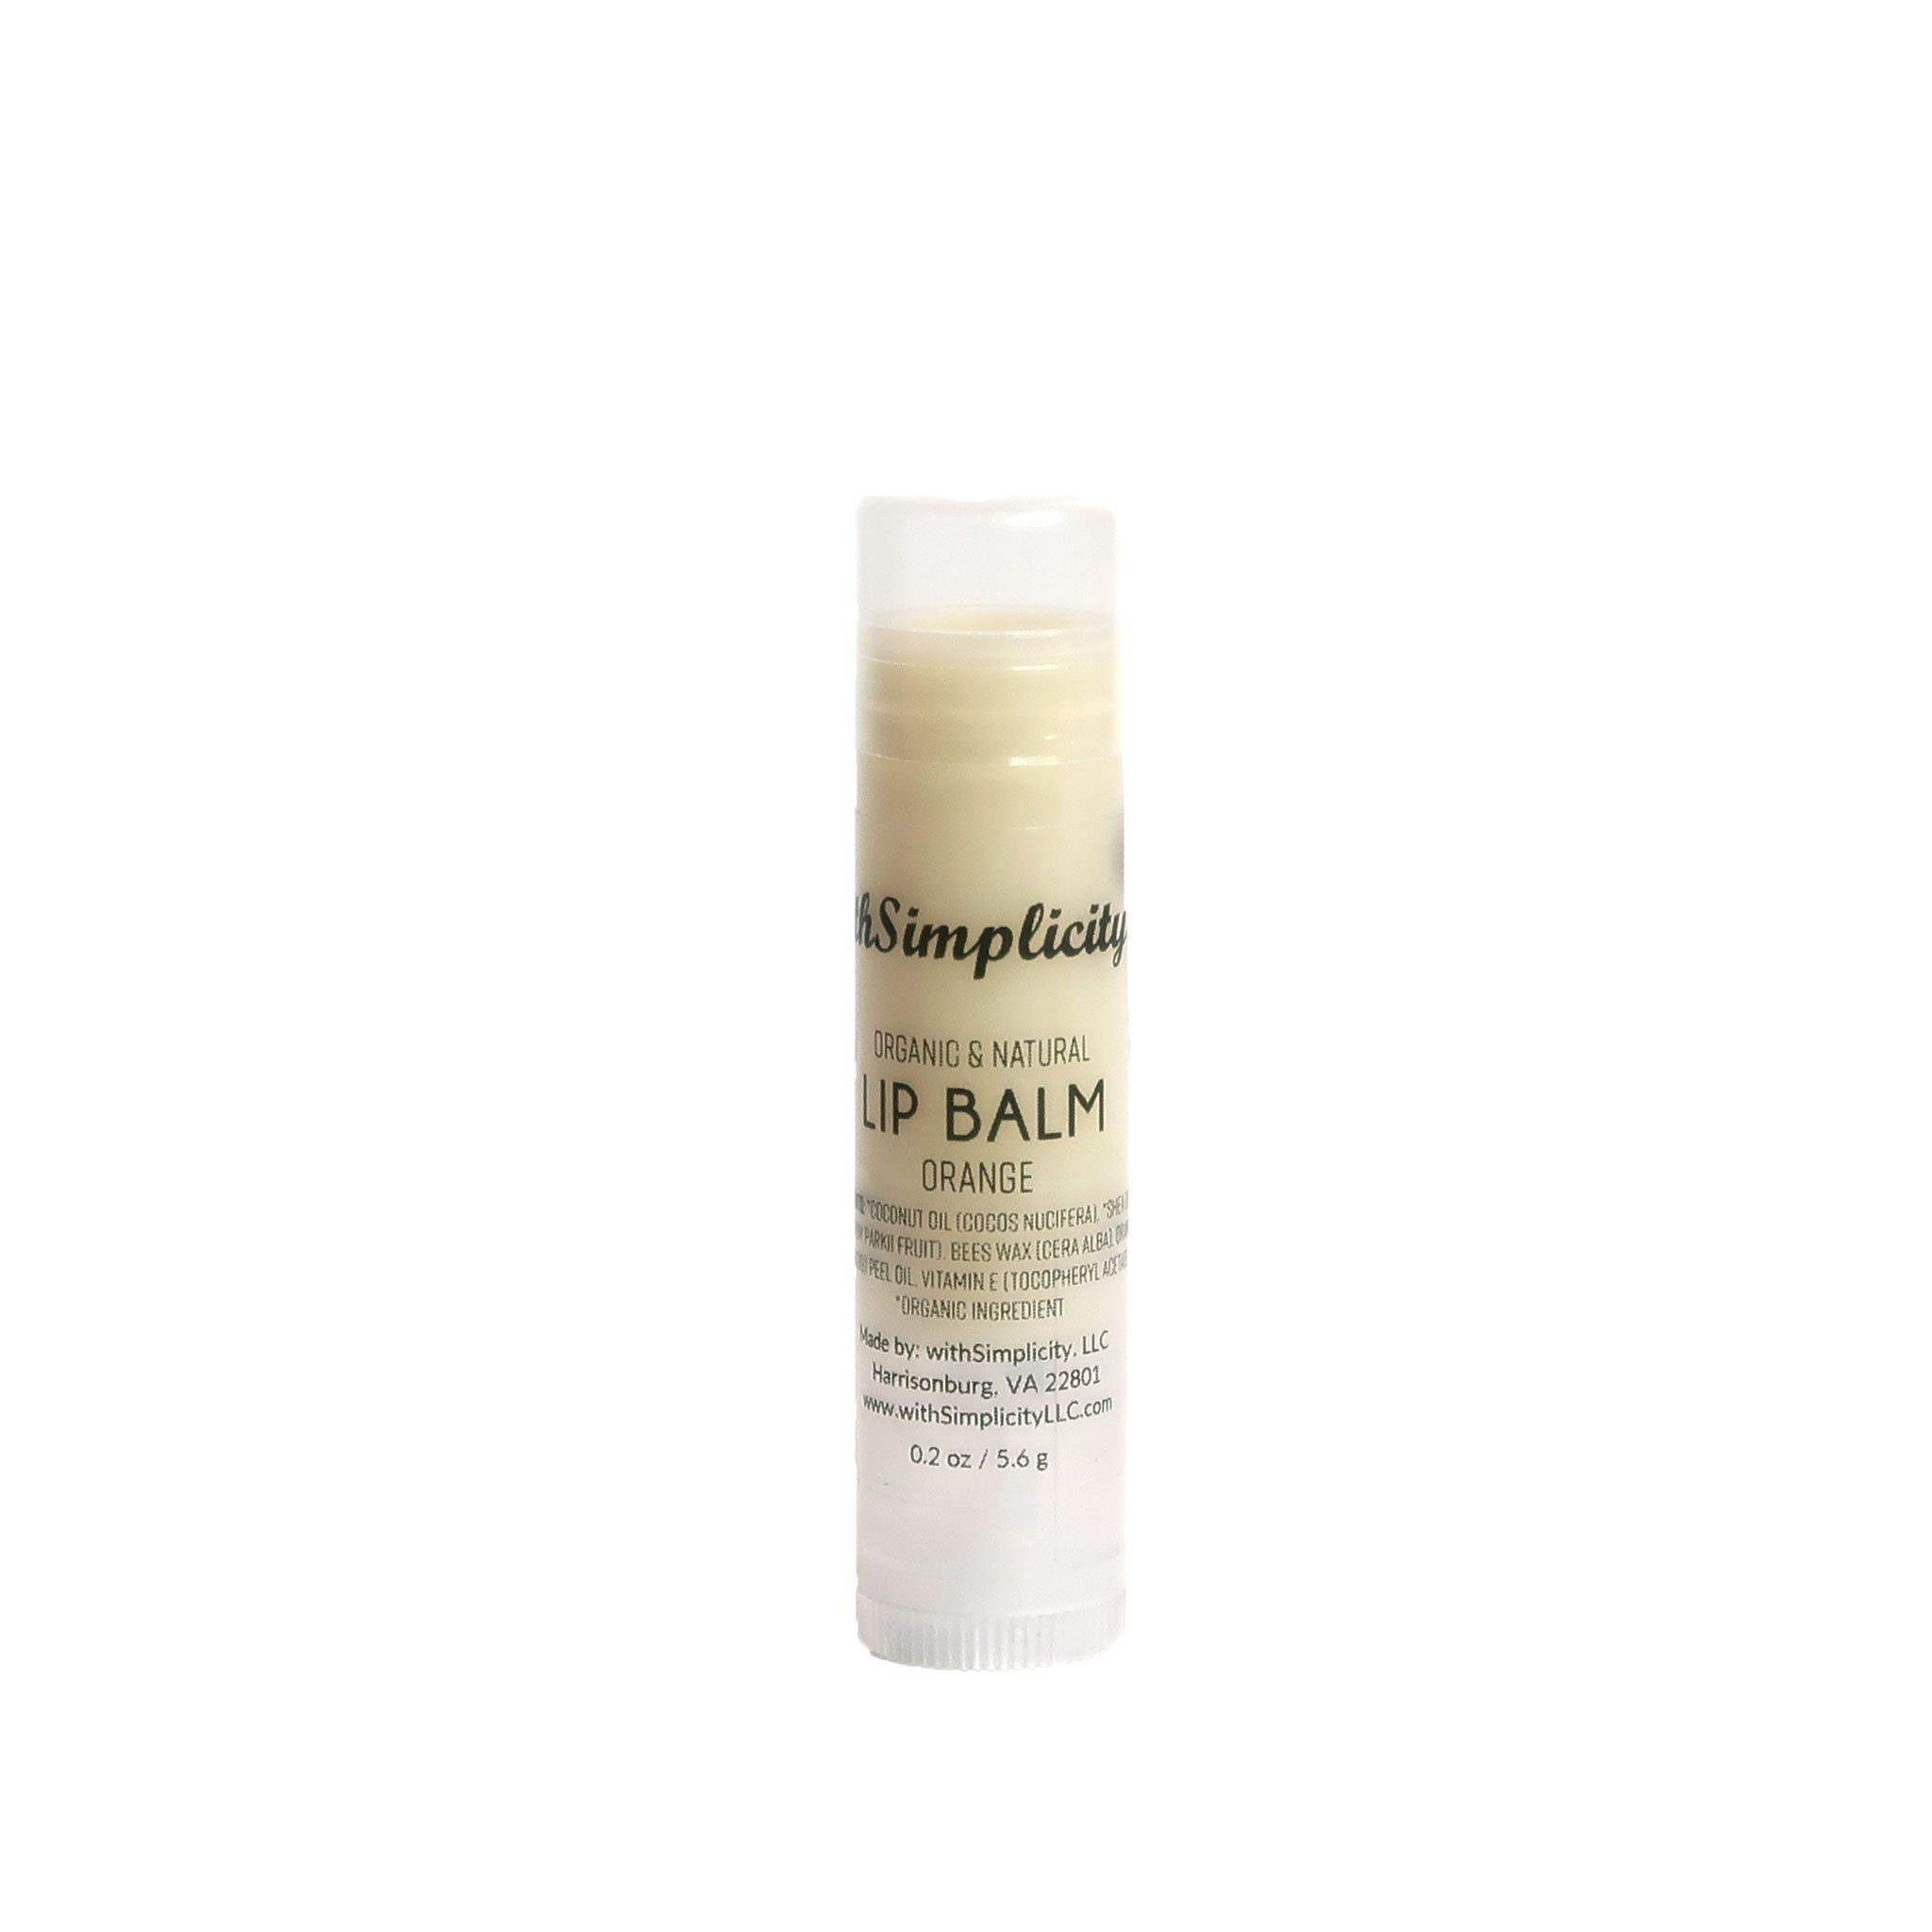 lip-balm-lips-withsimplicity-928295 (1).